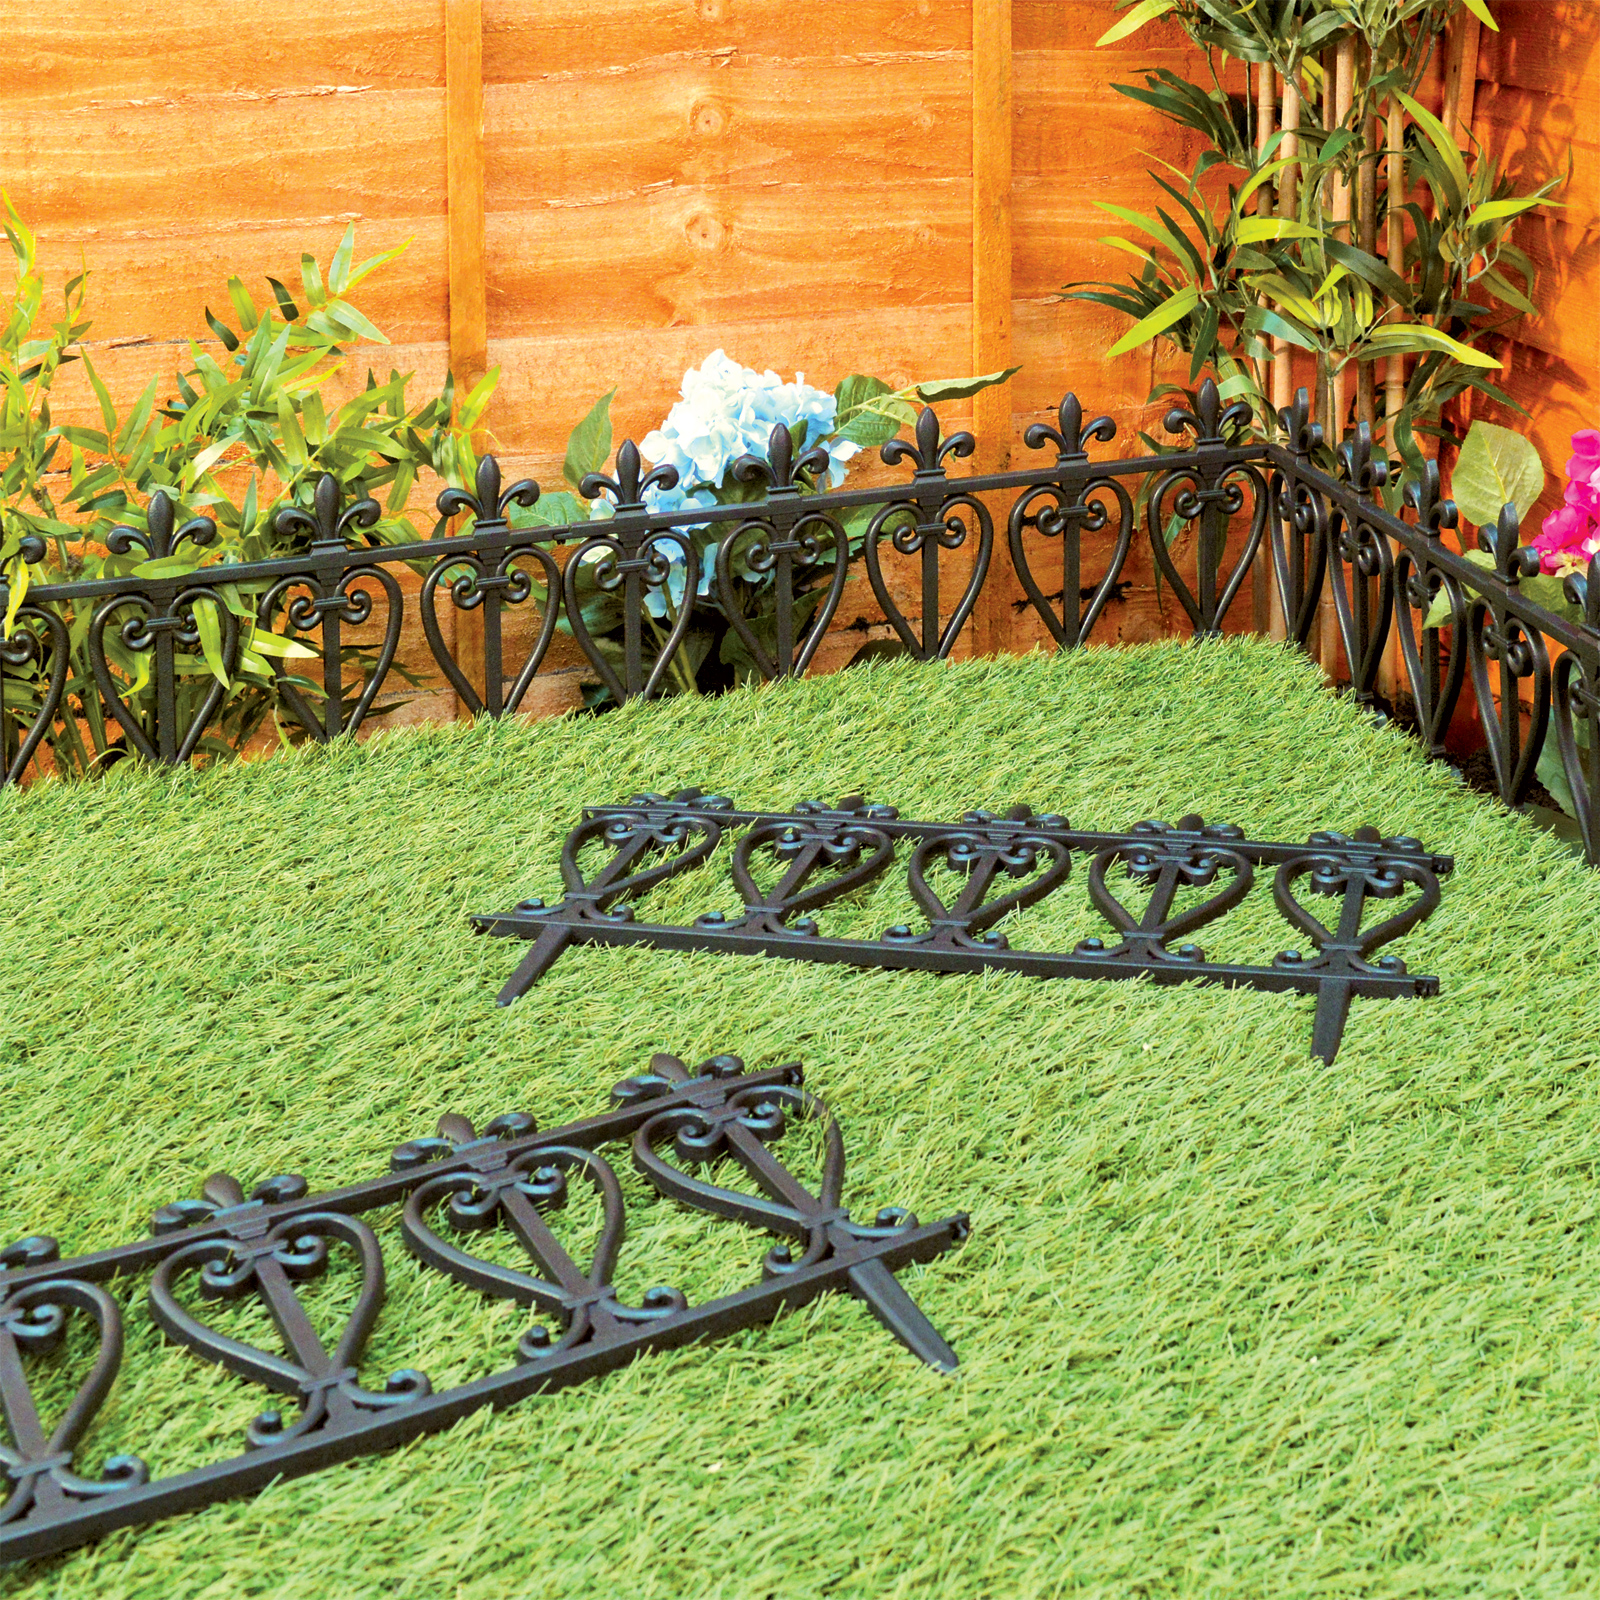 Attractive Garden Edging Lawn Flowerbed Border Fence Ornate Victorian Style